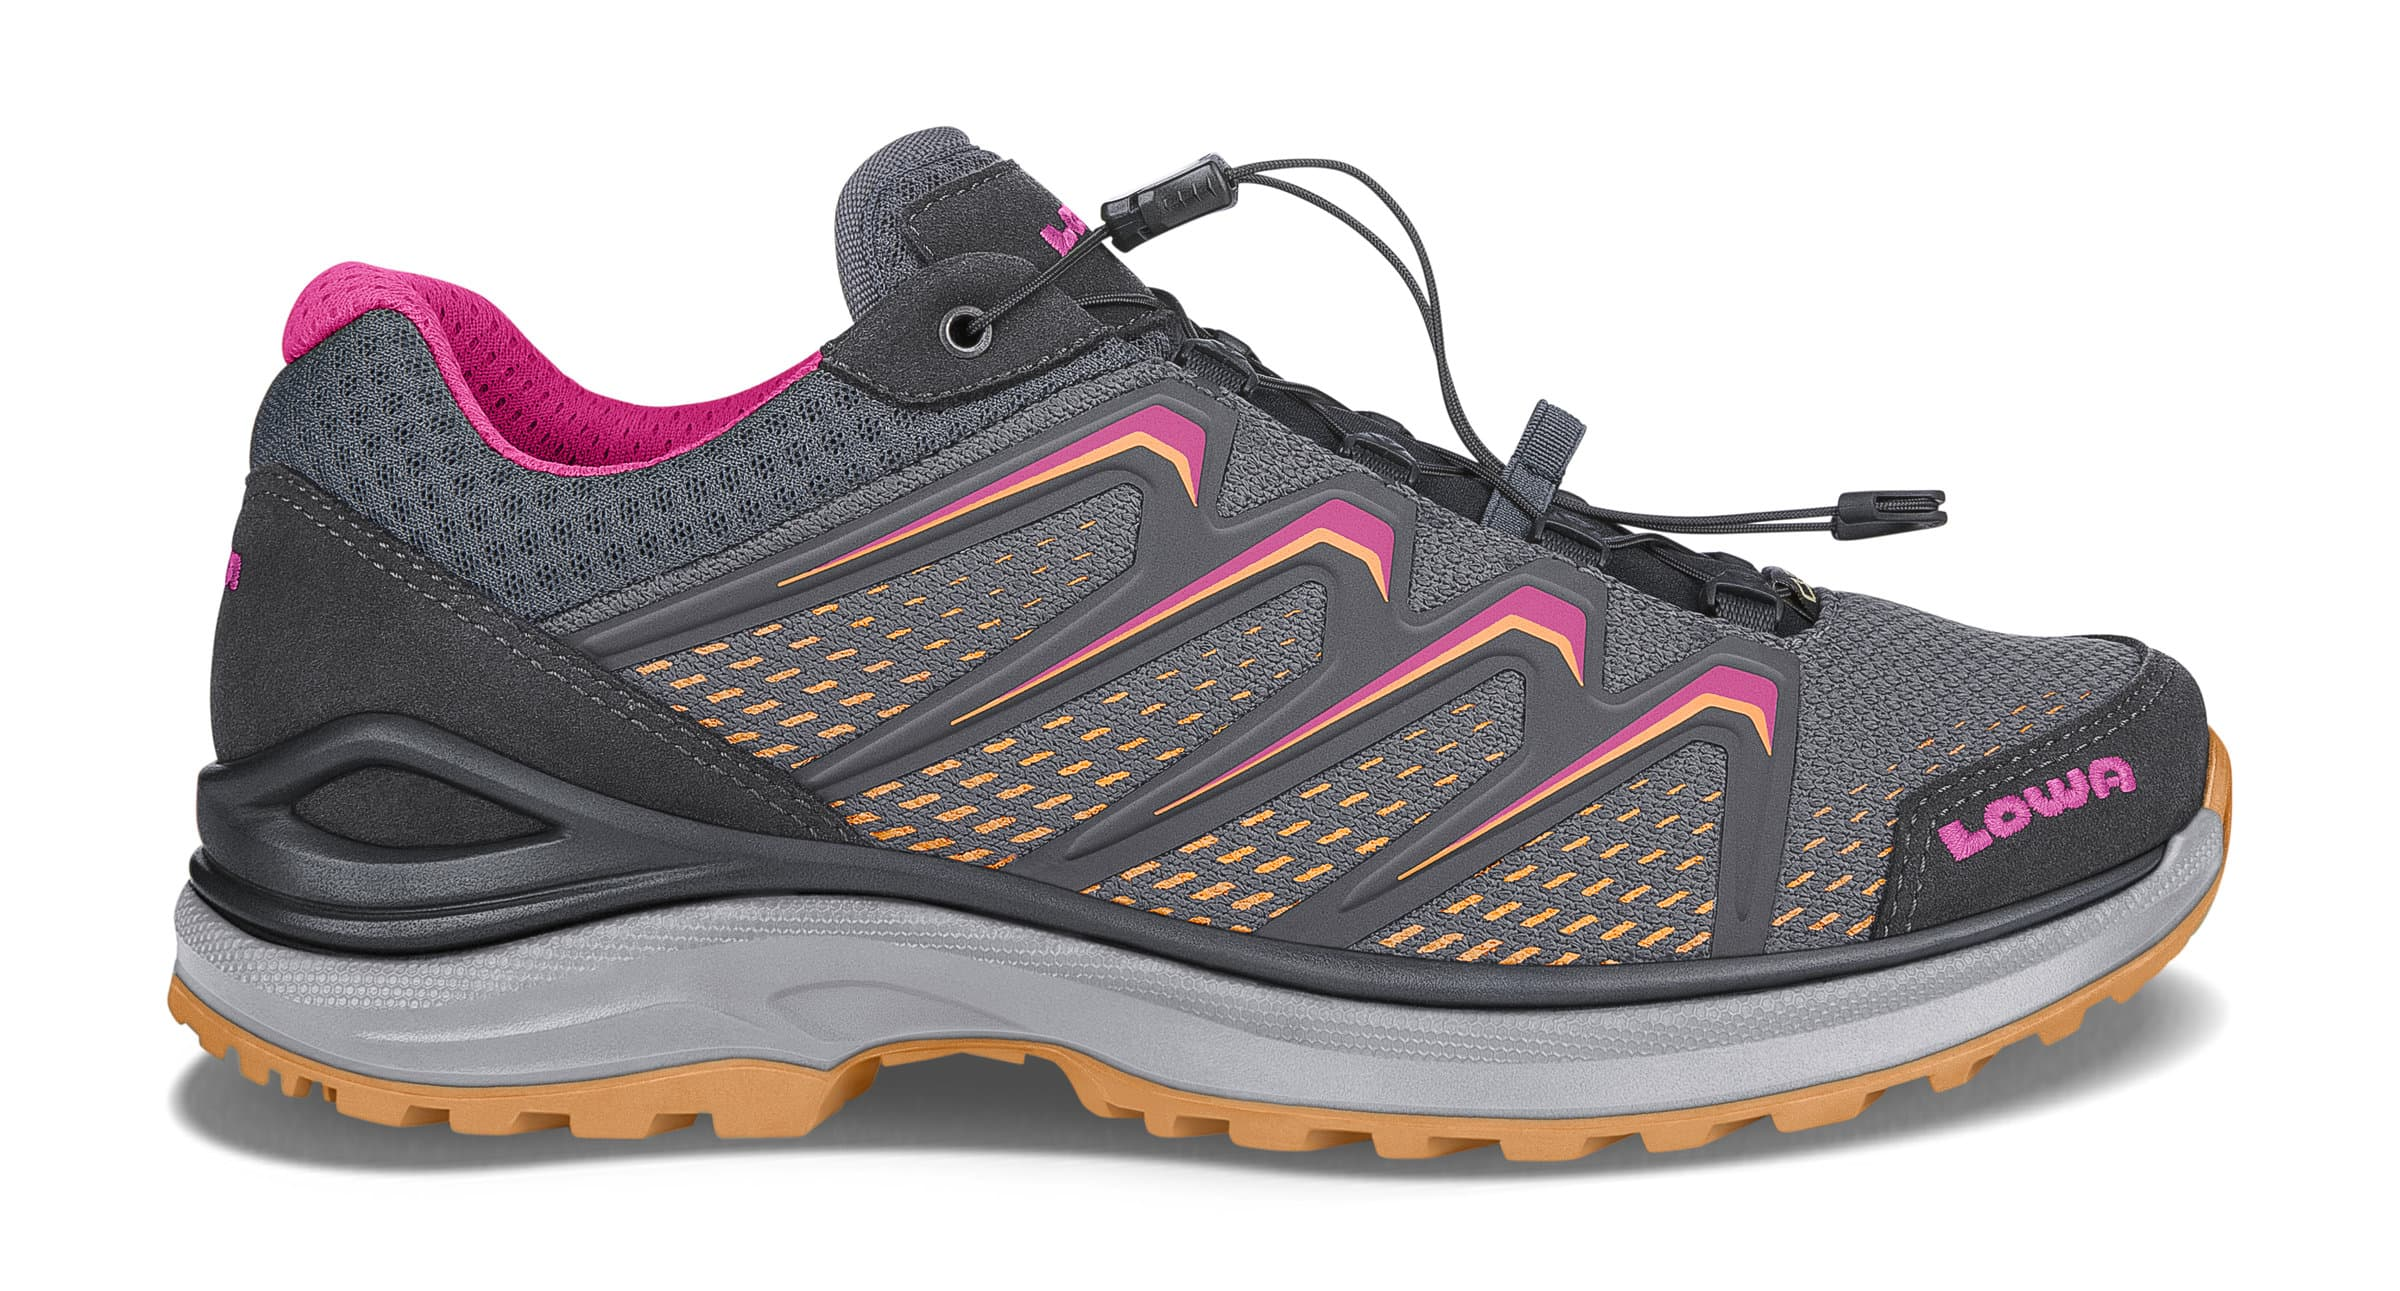 Lowa Maddox GTX Lo Chaussures polyvalentes pour femme